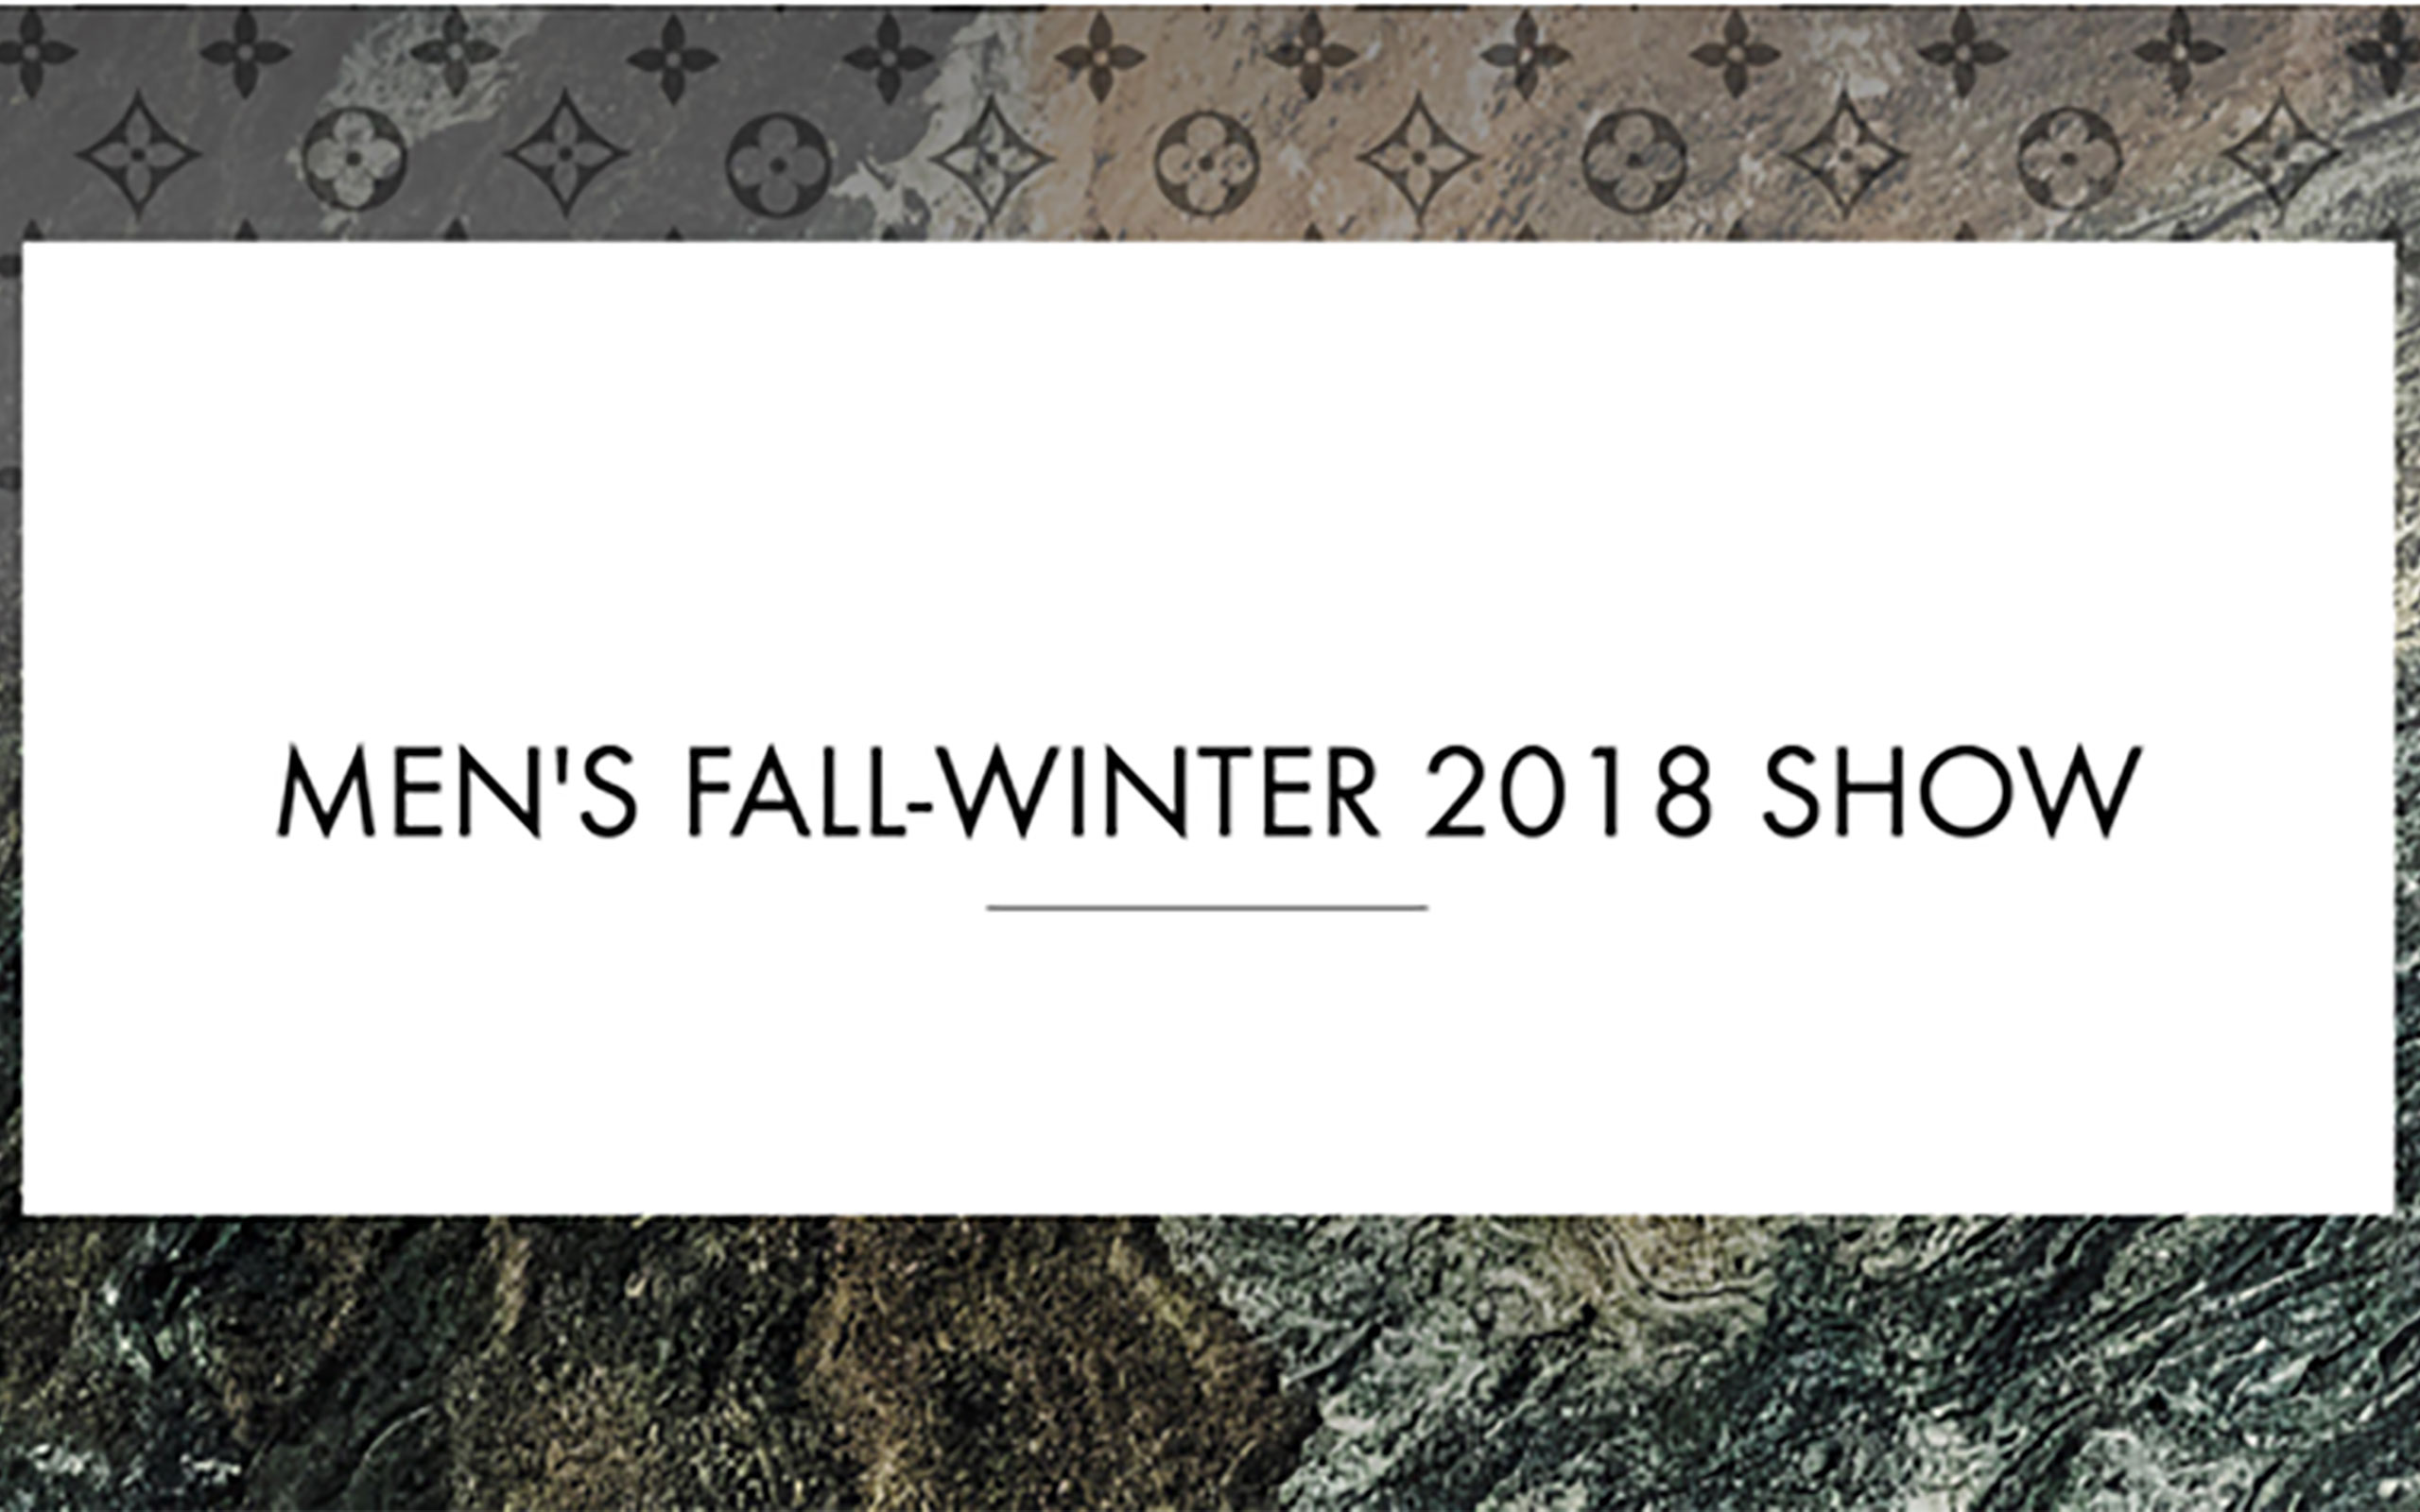 Now On Live: Louis Vuitton Fall – Winter 2018 Men's Collection